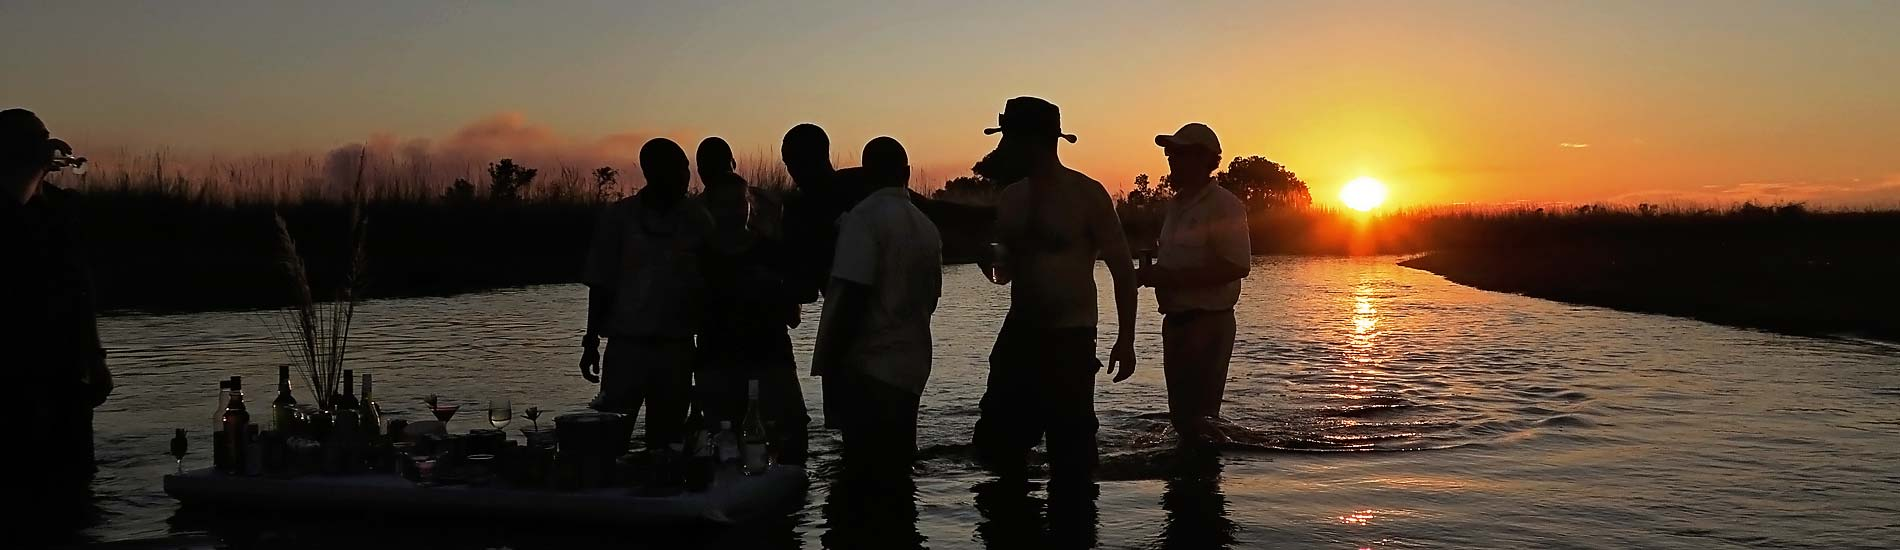 High Resolution Image: Botswana Safari Guides, having sundowners